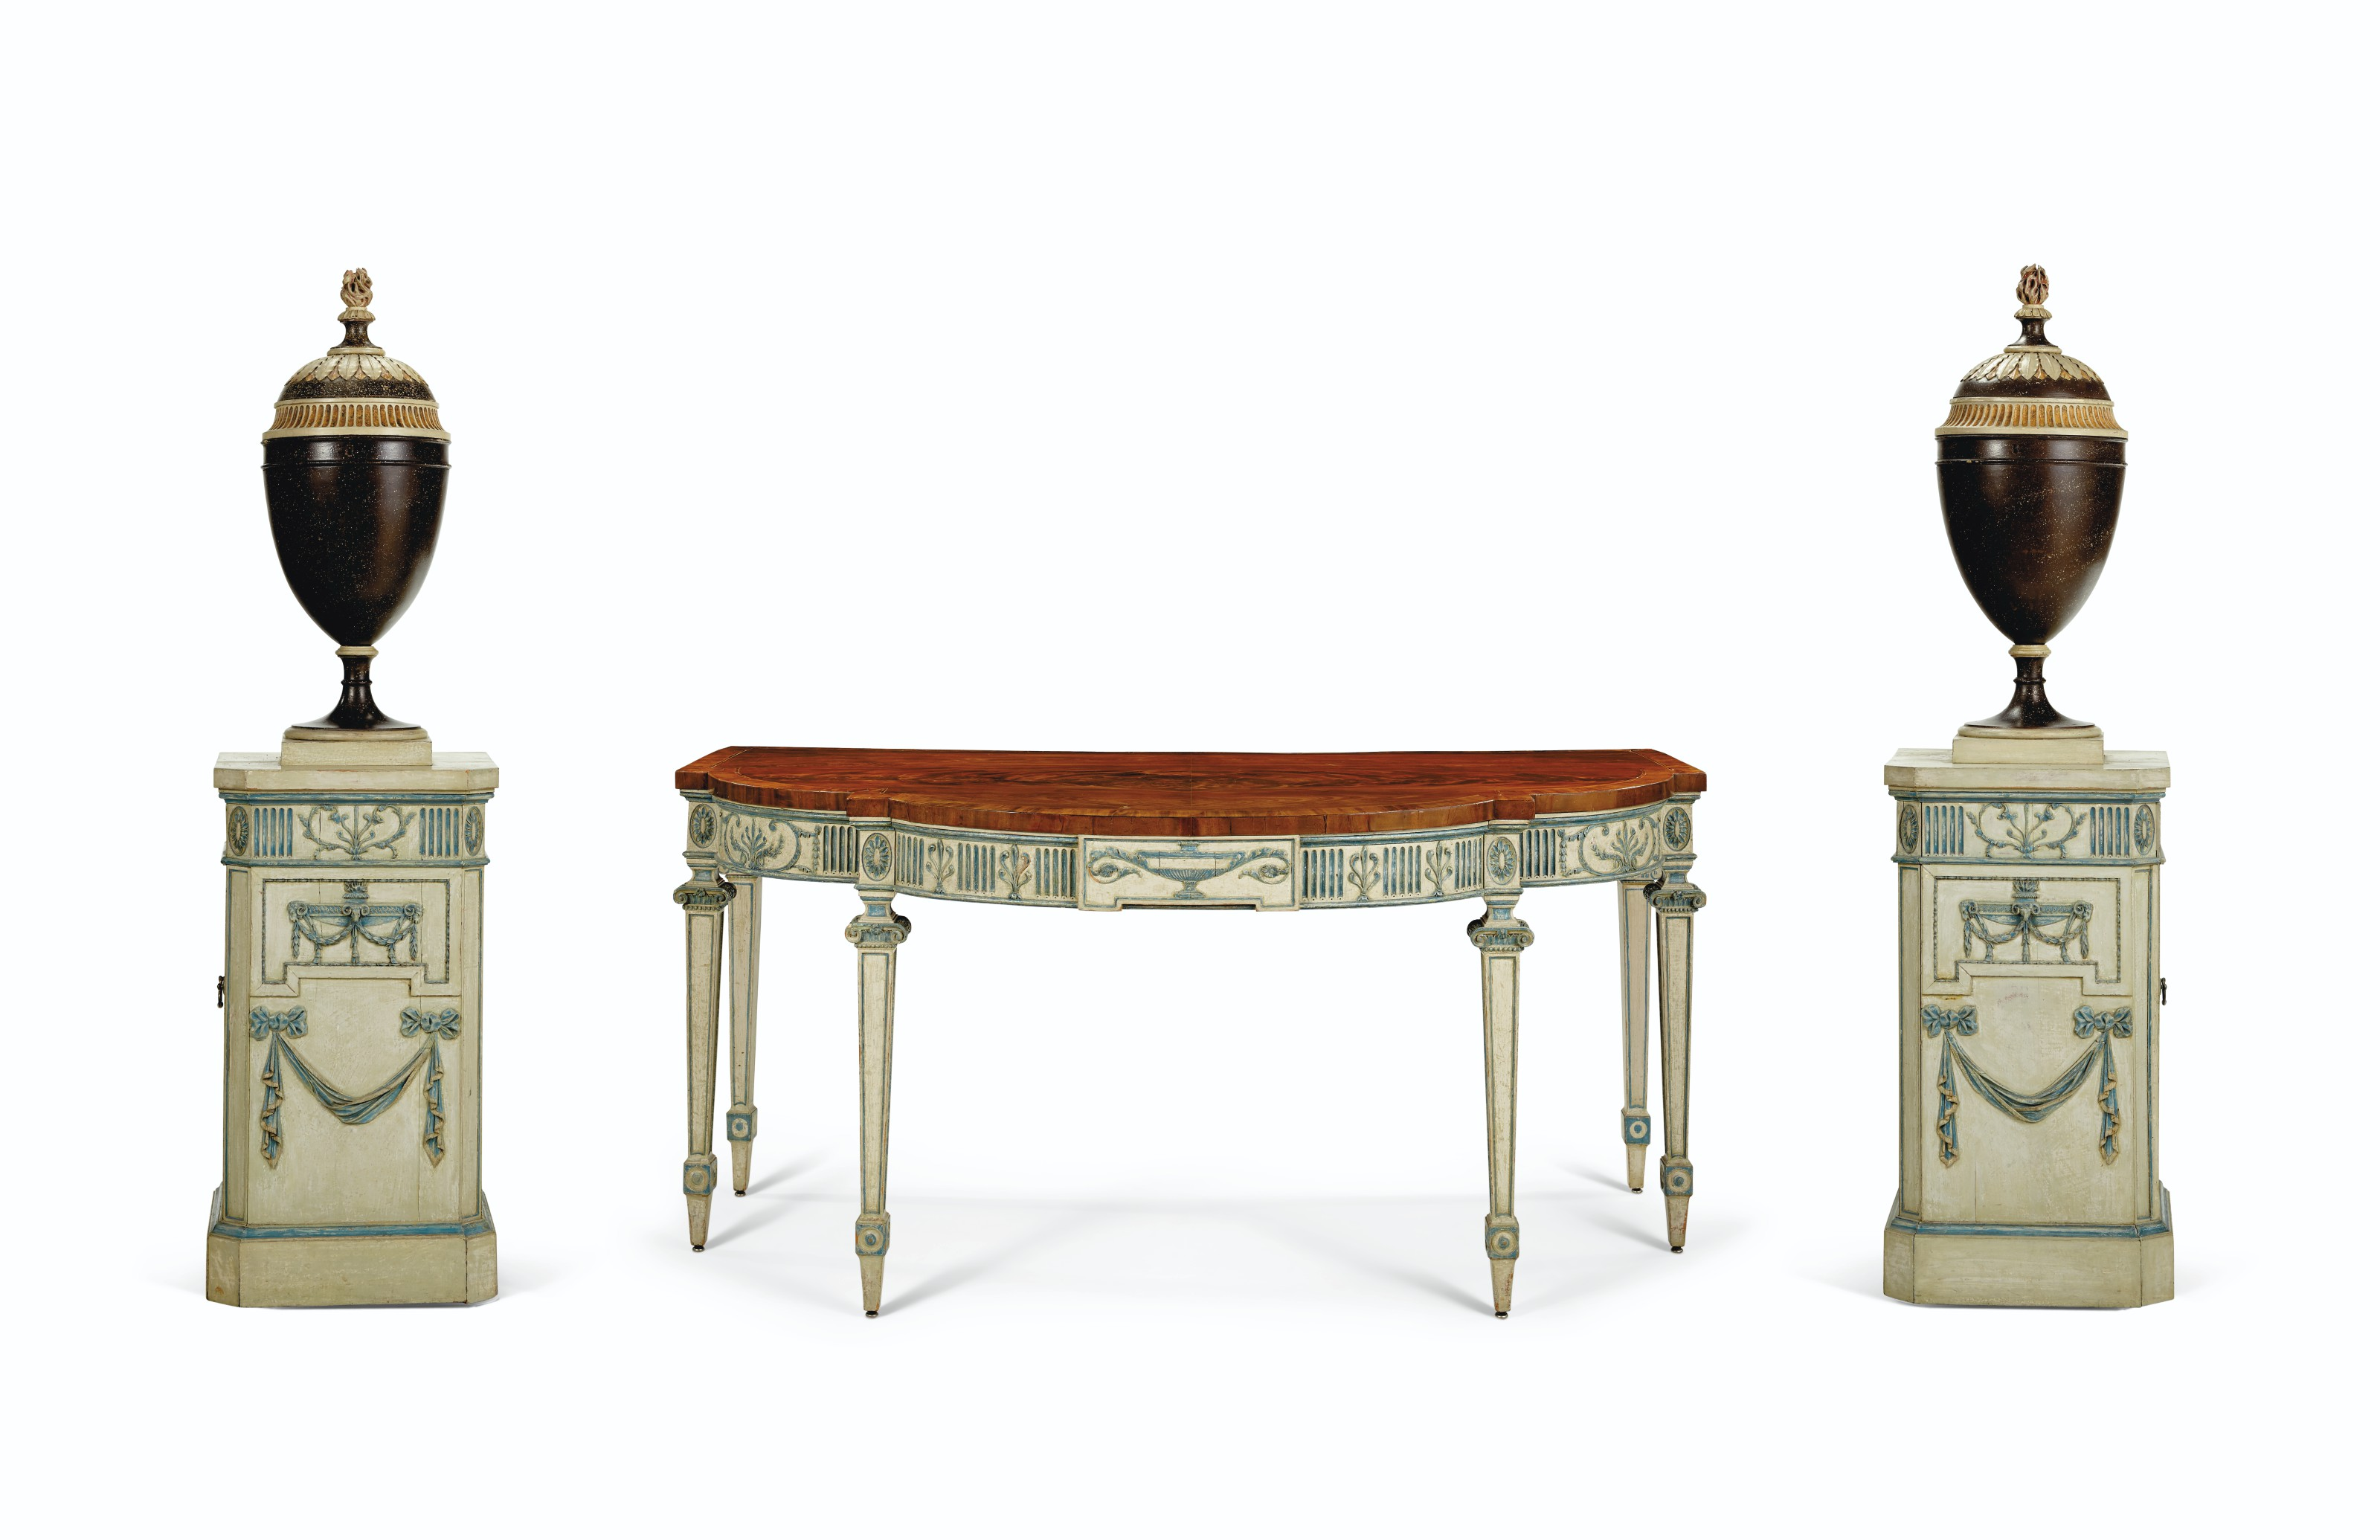 A SUITE OF GEORGE III CREAM AND BLUE-PAINTED MAHOGANY DINING ROOM FURNITURE